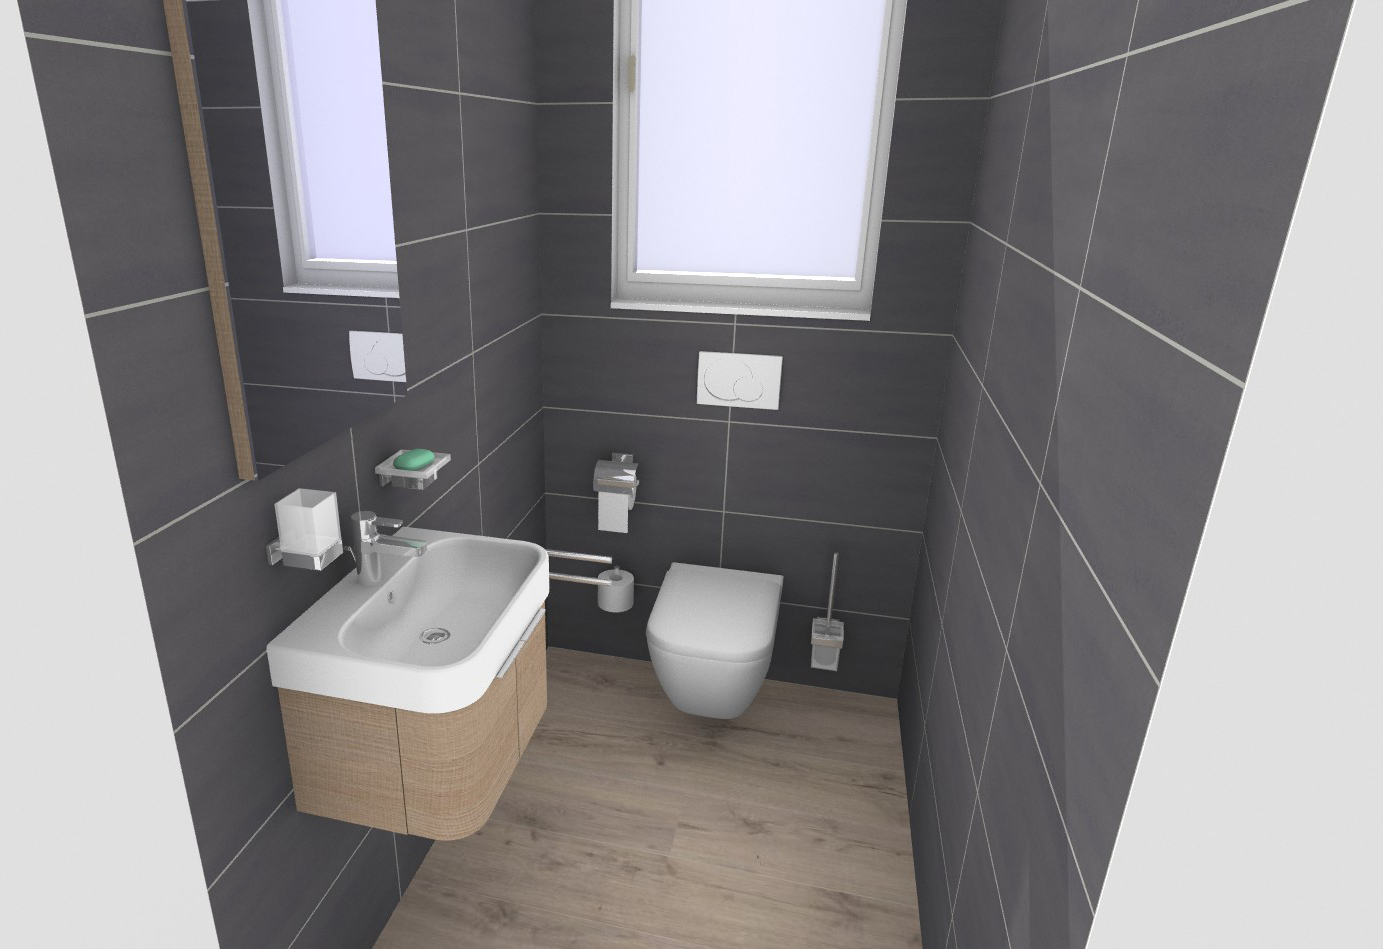 Bathroom planner duravit for Badezimmer ideen 6 qm